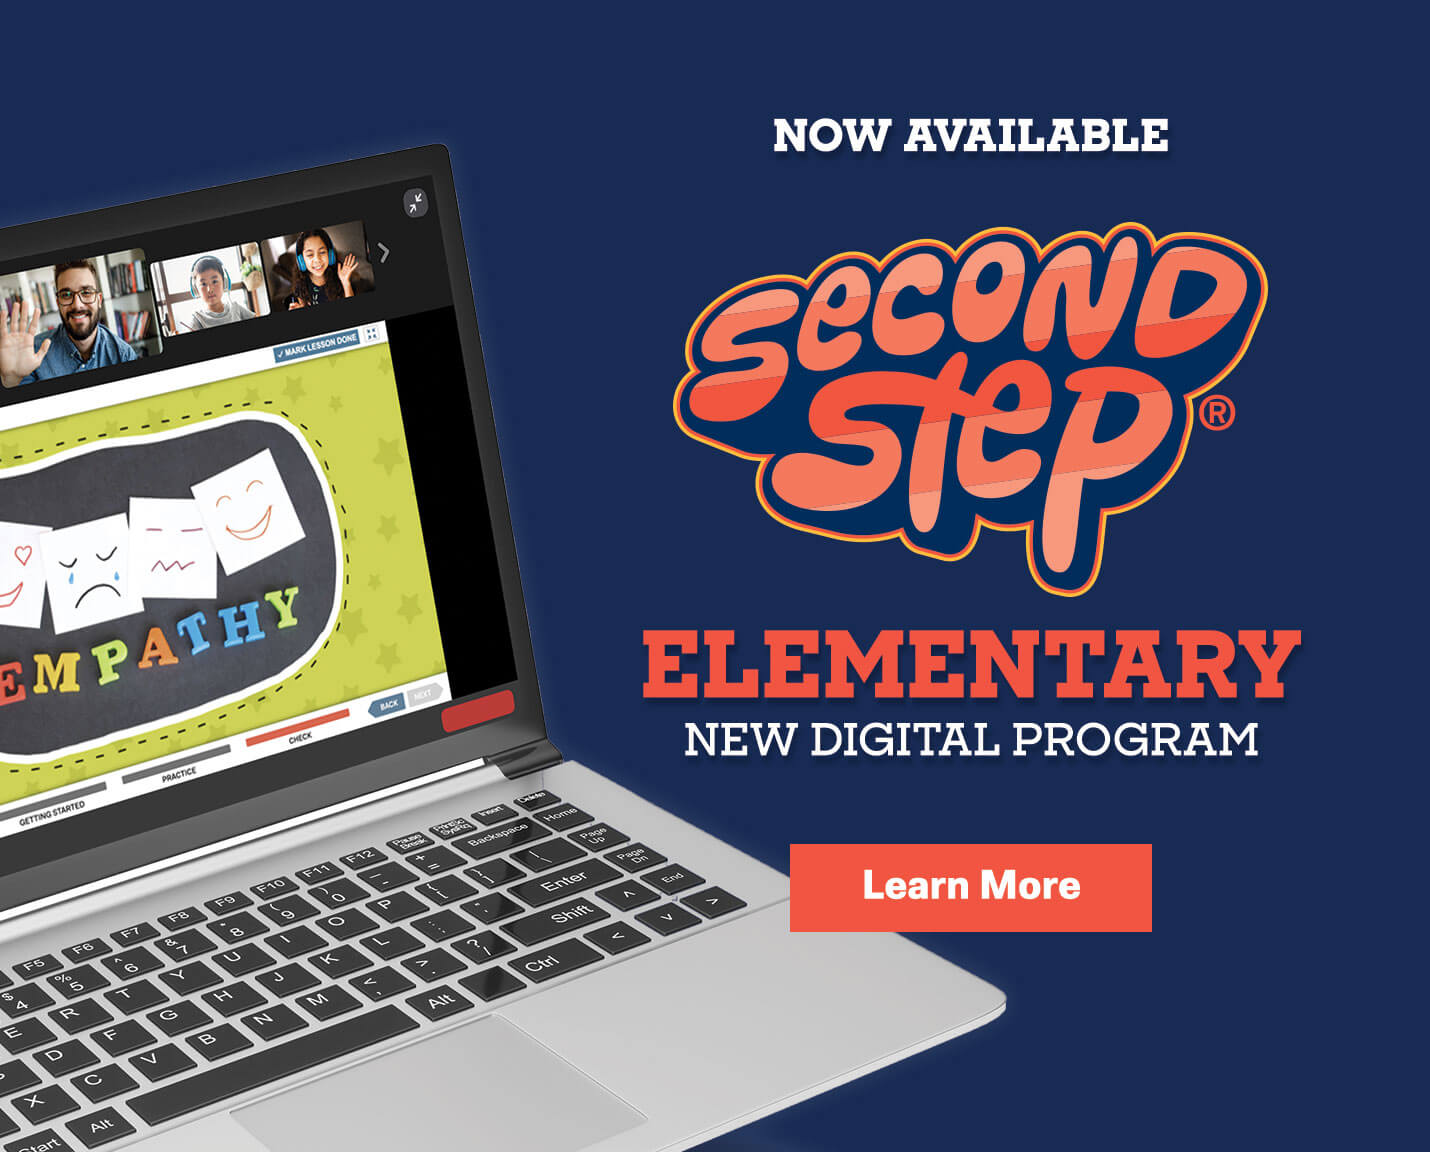 Now Available: Second Step Elementary New Digital Program